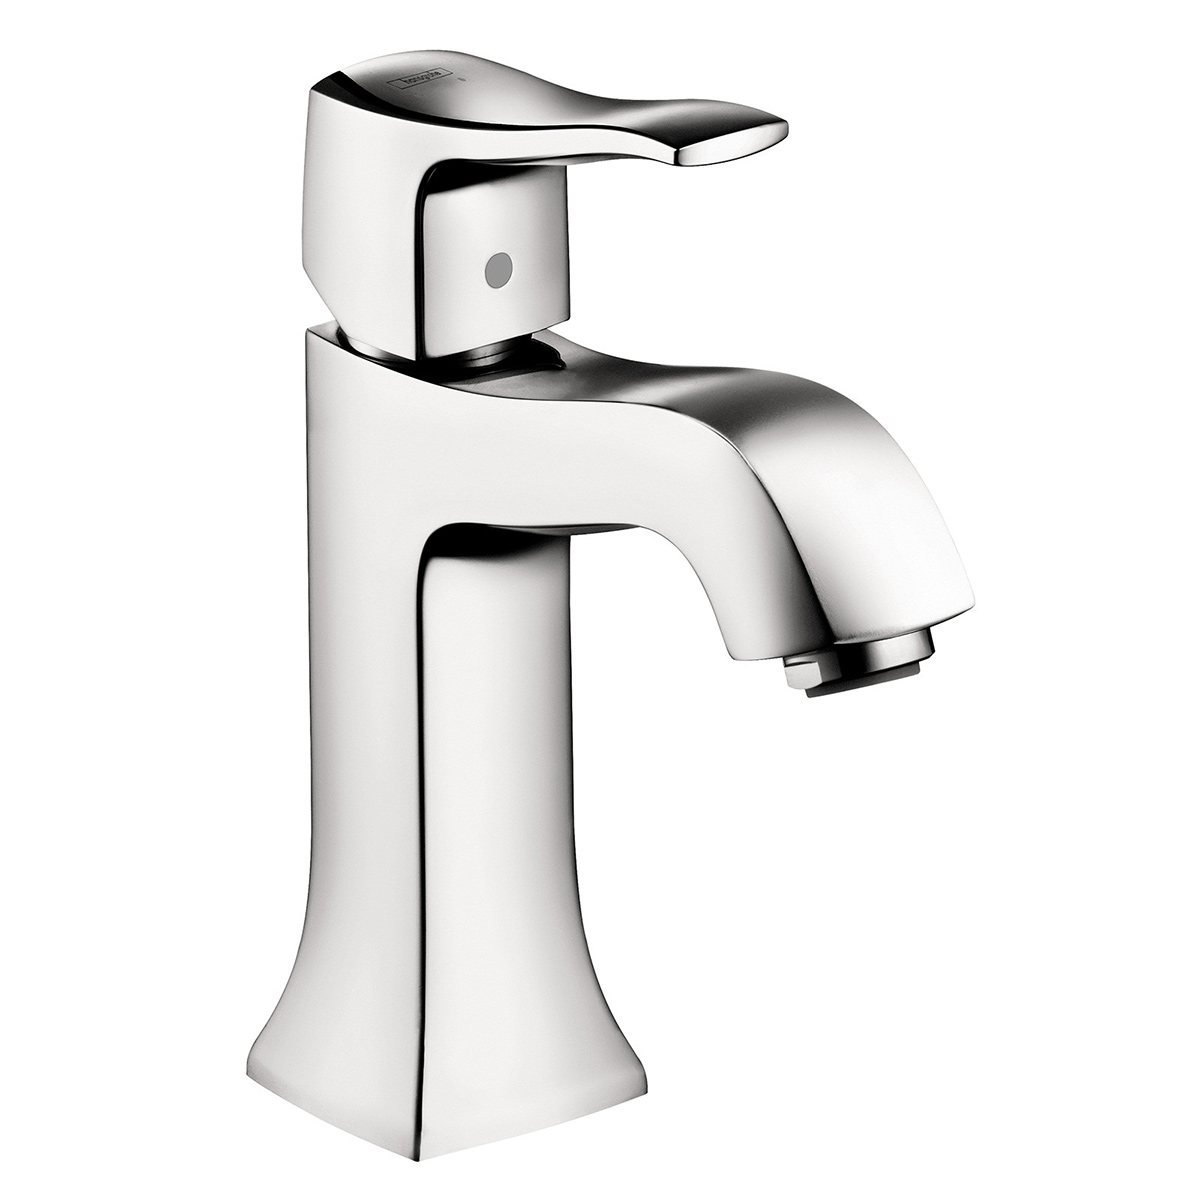 instructions ingle lavatory joyryde metris co faucets faucet installation bathroom hansgrohe